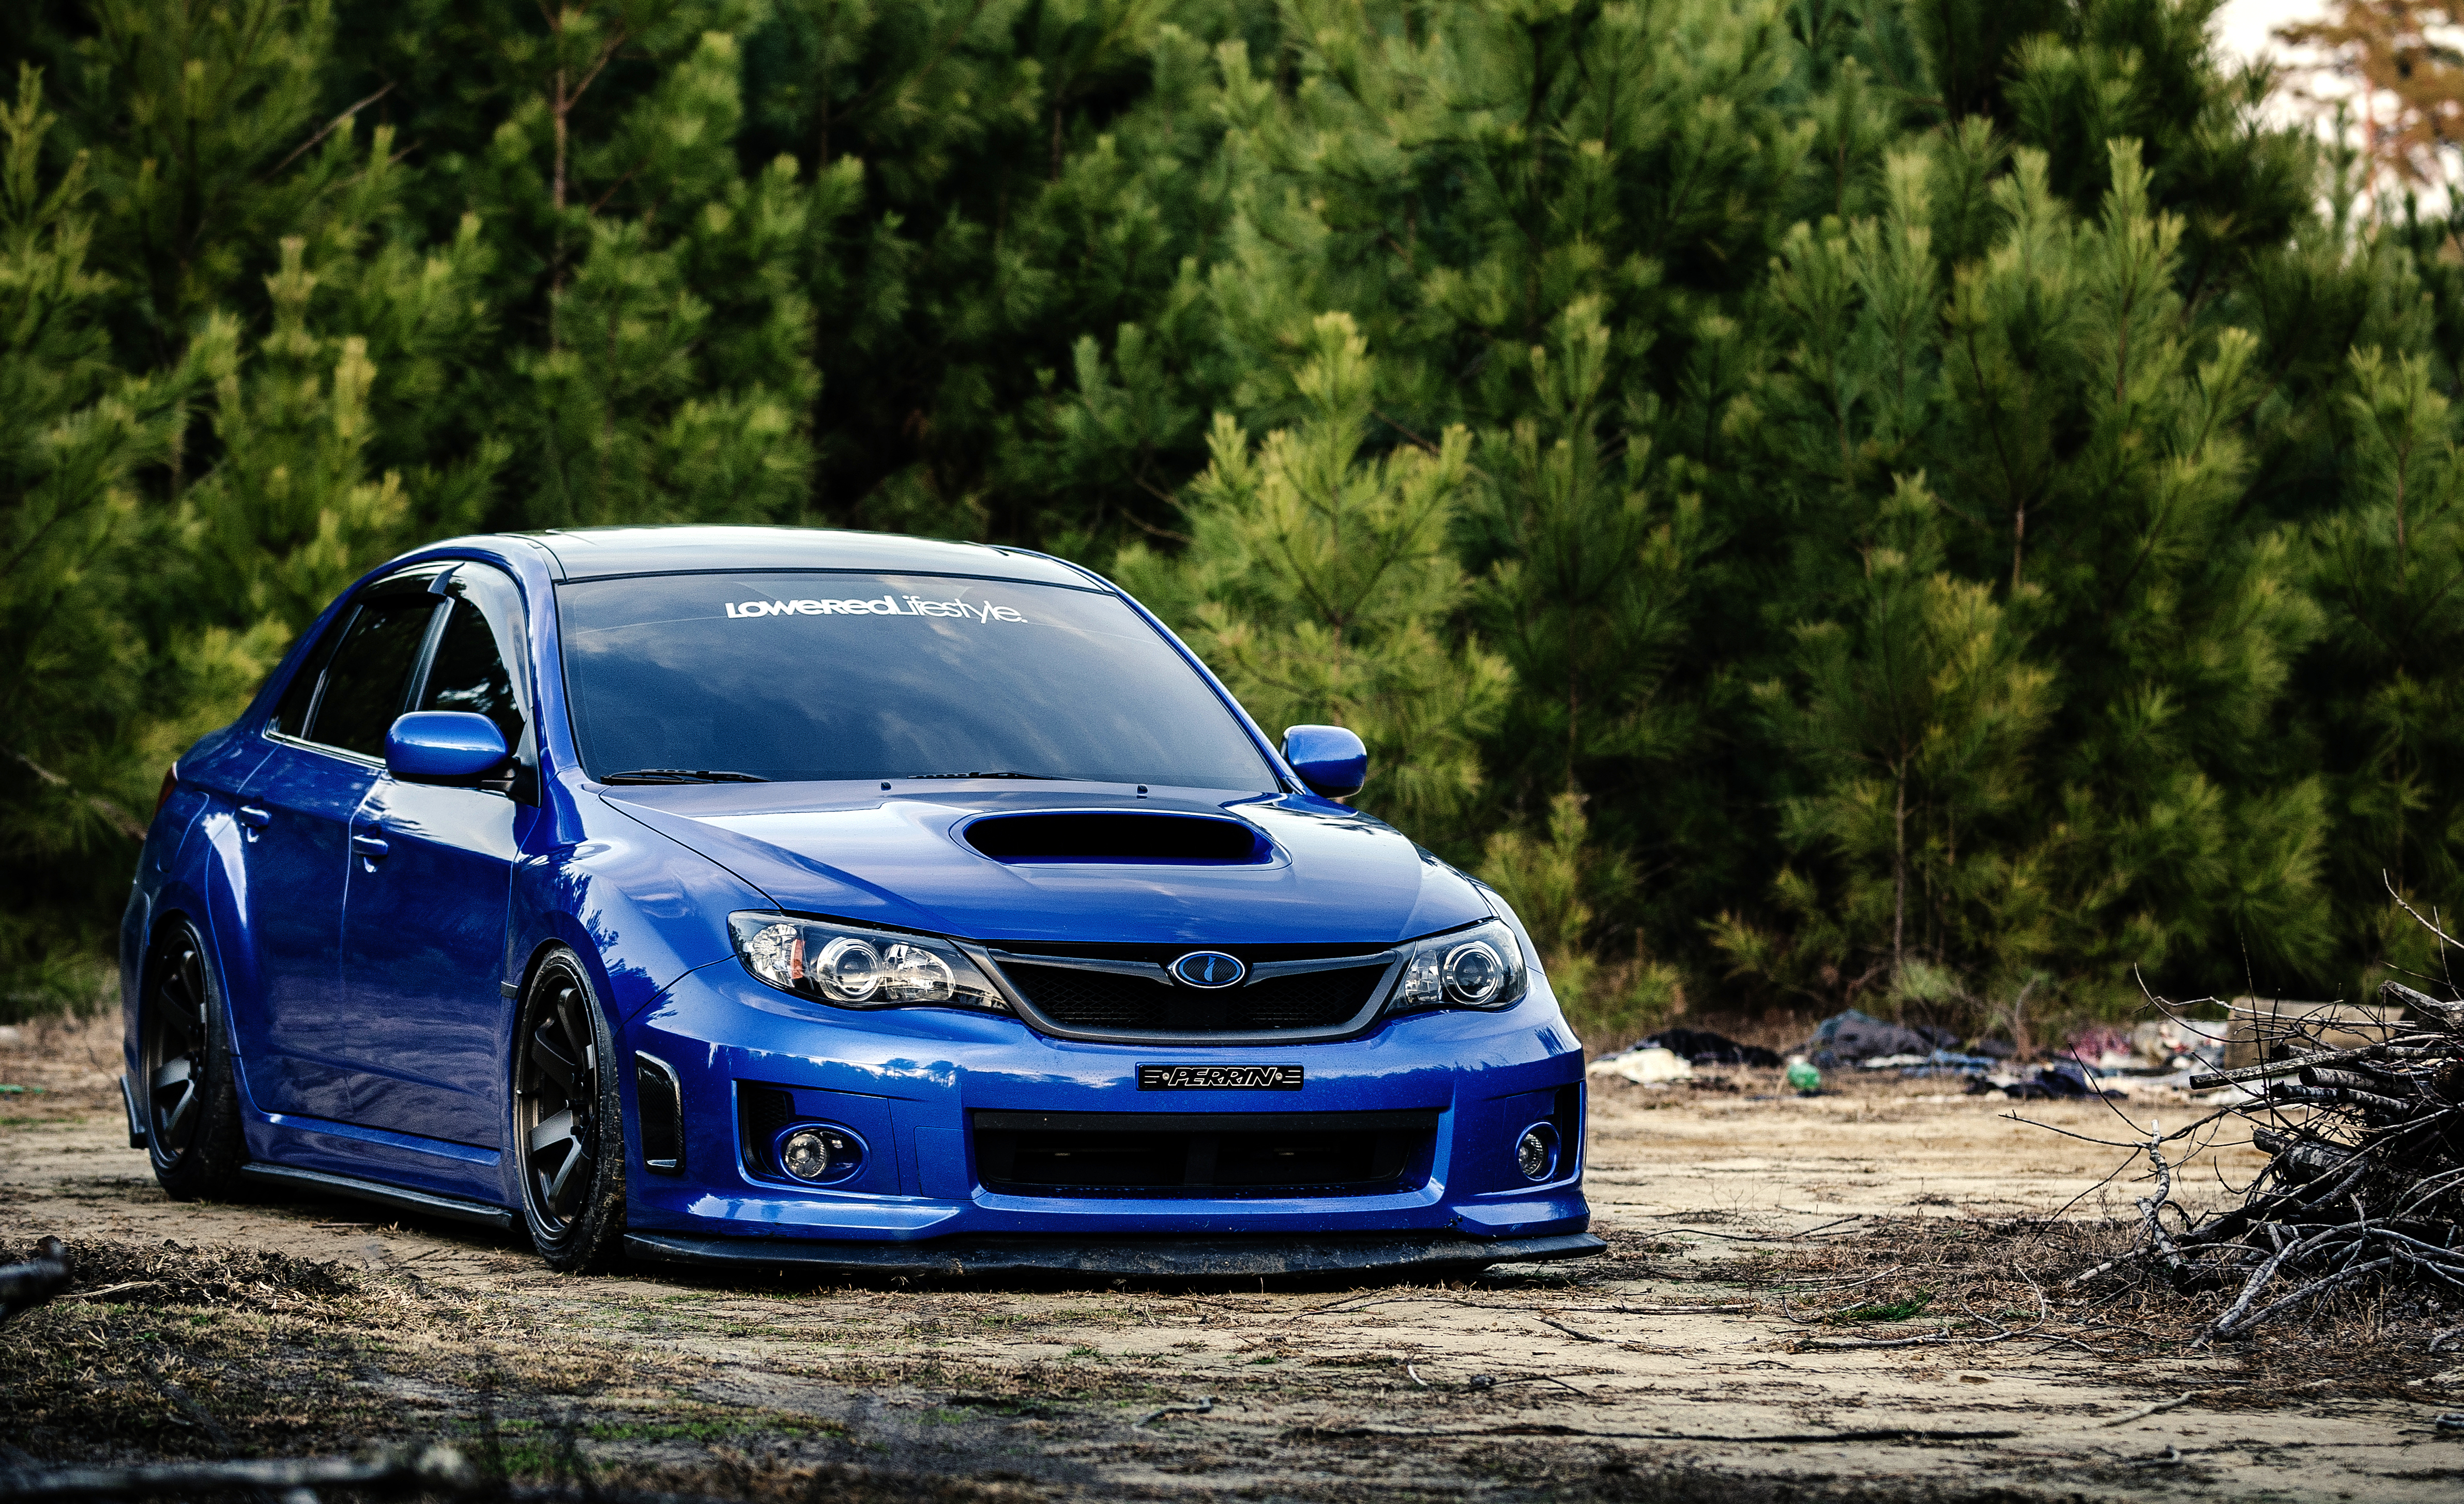 Subaru Impreza 4k Ultra Hd Wallpaper Background Image 4766x2910